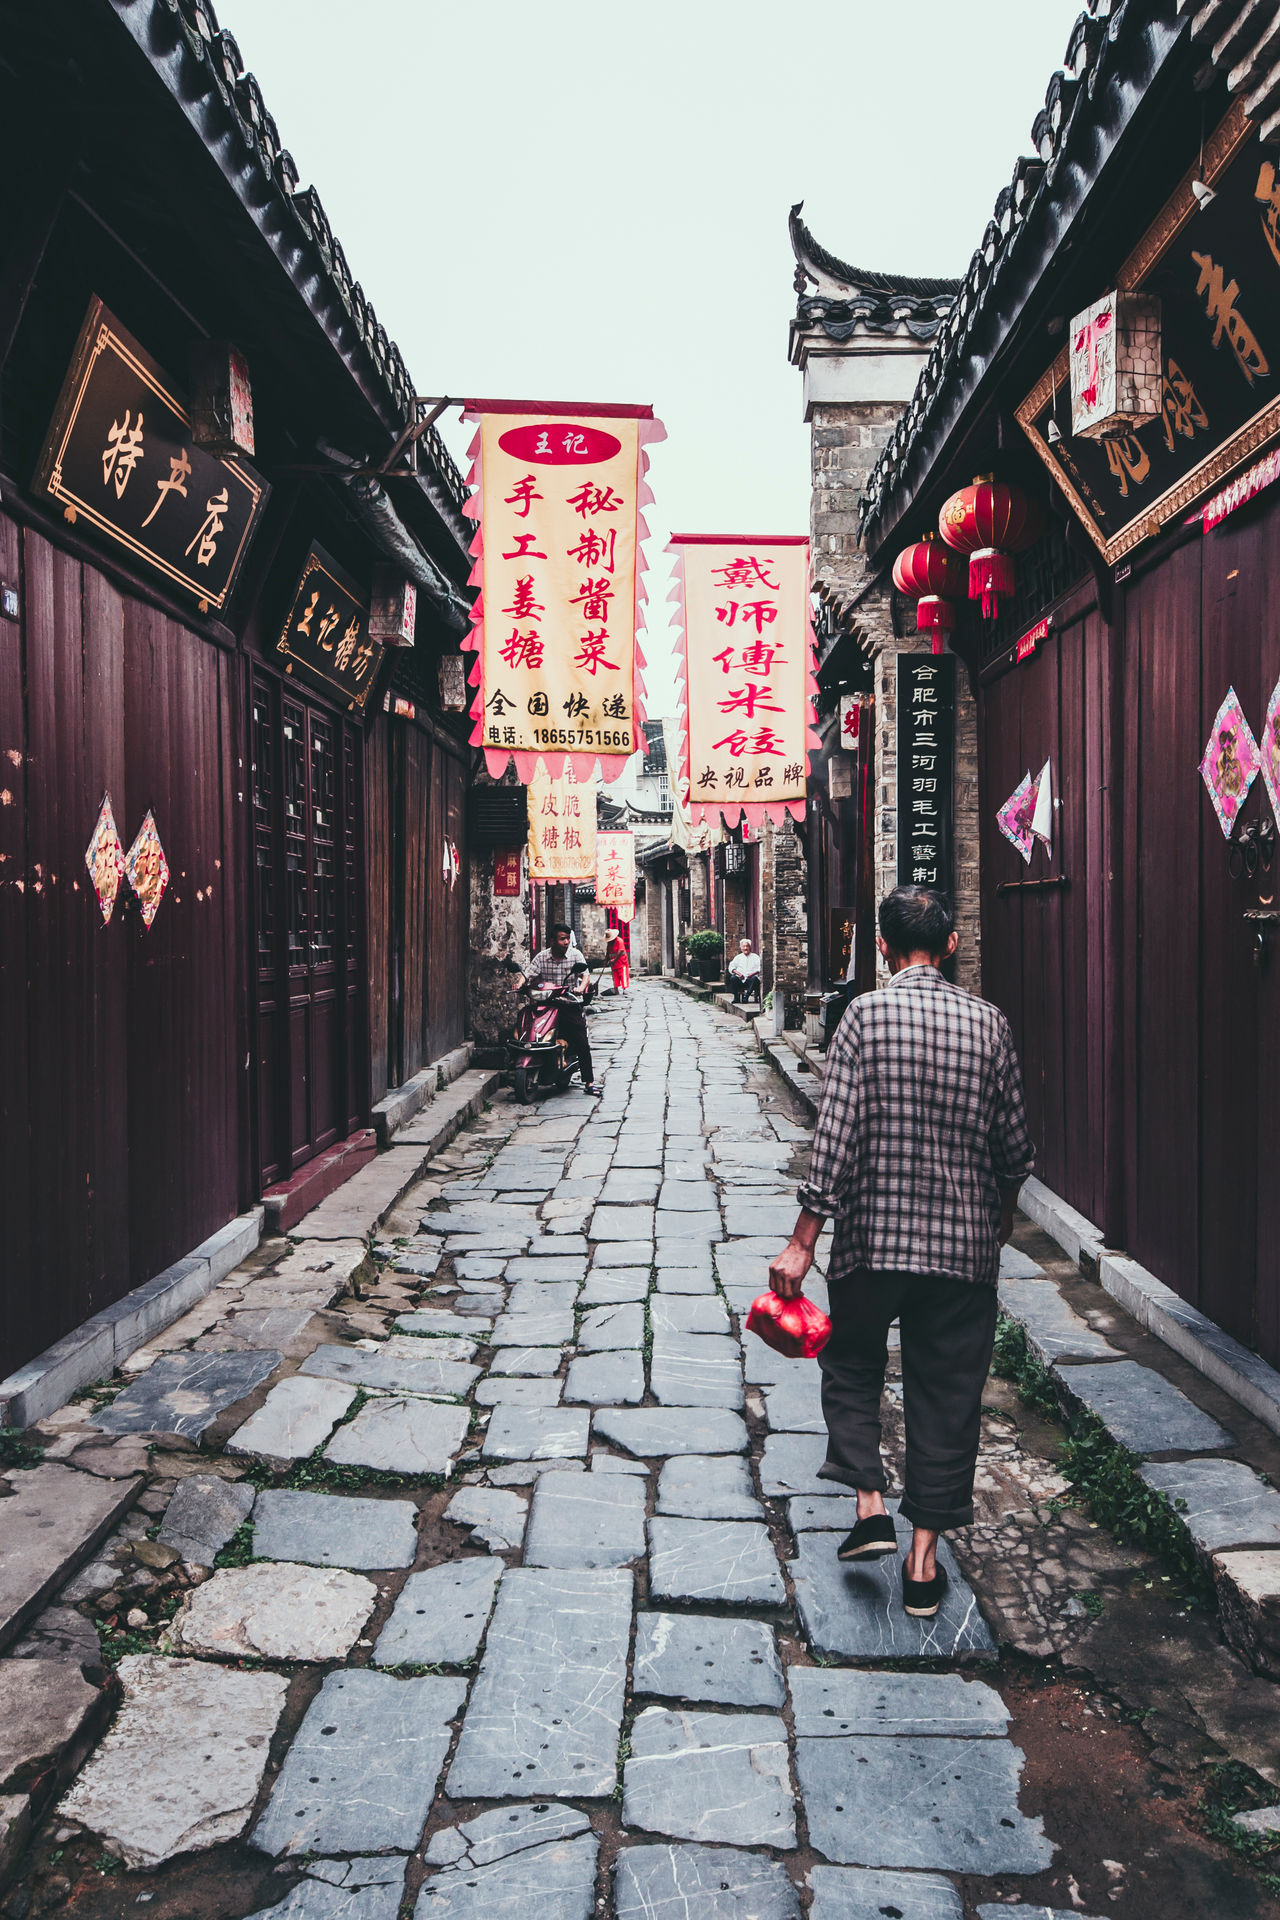 Morning in Sanhe ,Anhui, China Alley Alleyway Anhui Architecture Building Building Exterior Built Structure Chinese Classic Lifestyles Residential Structure S Sanhe Shop Tour Tradition Tranquility Walkway